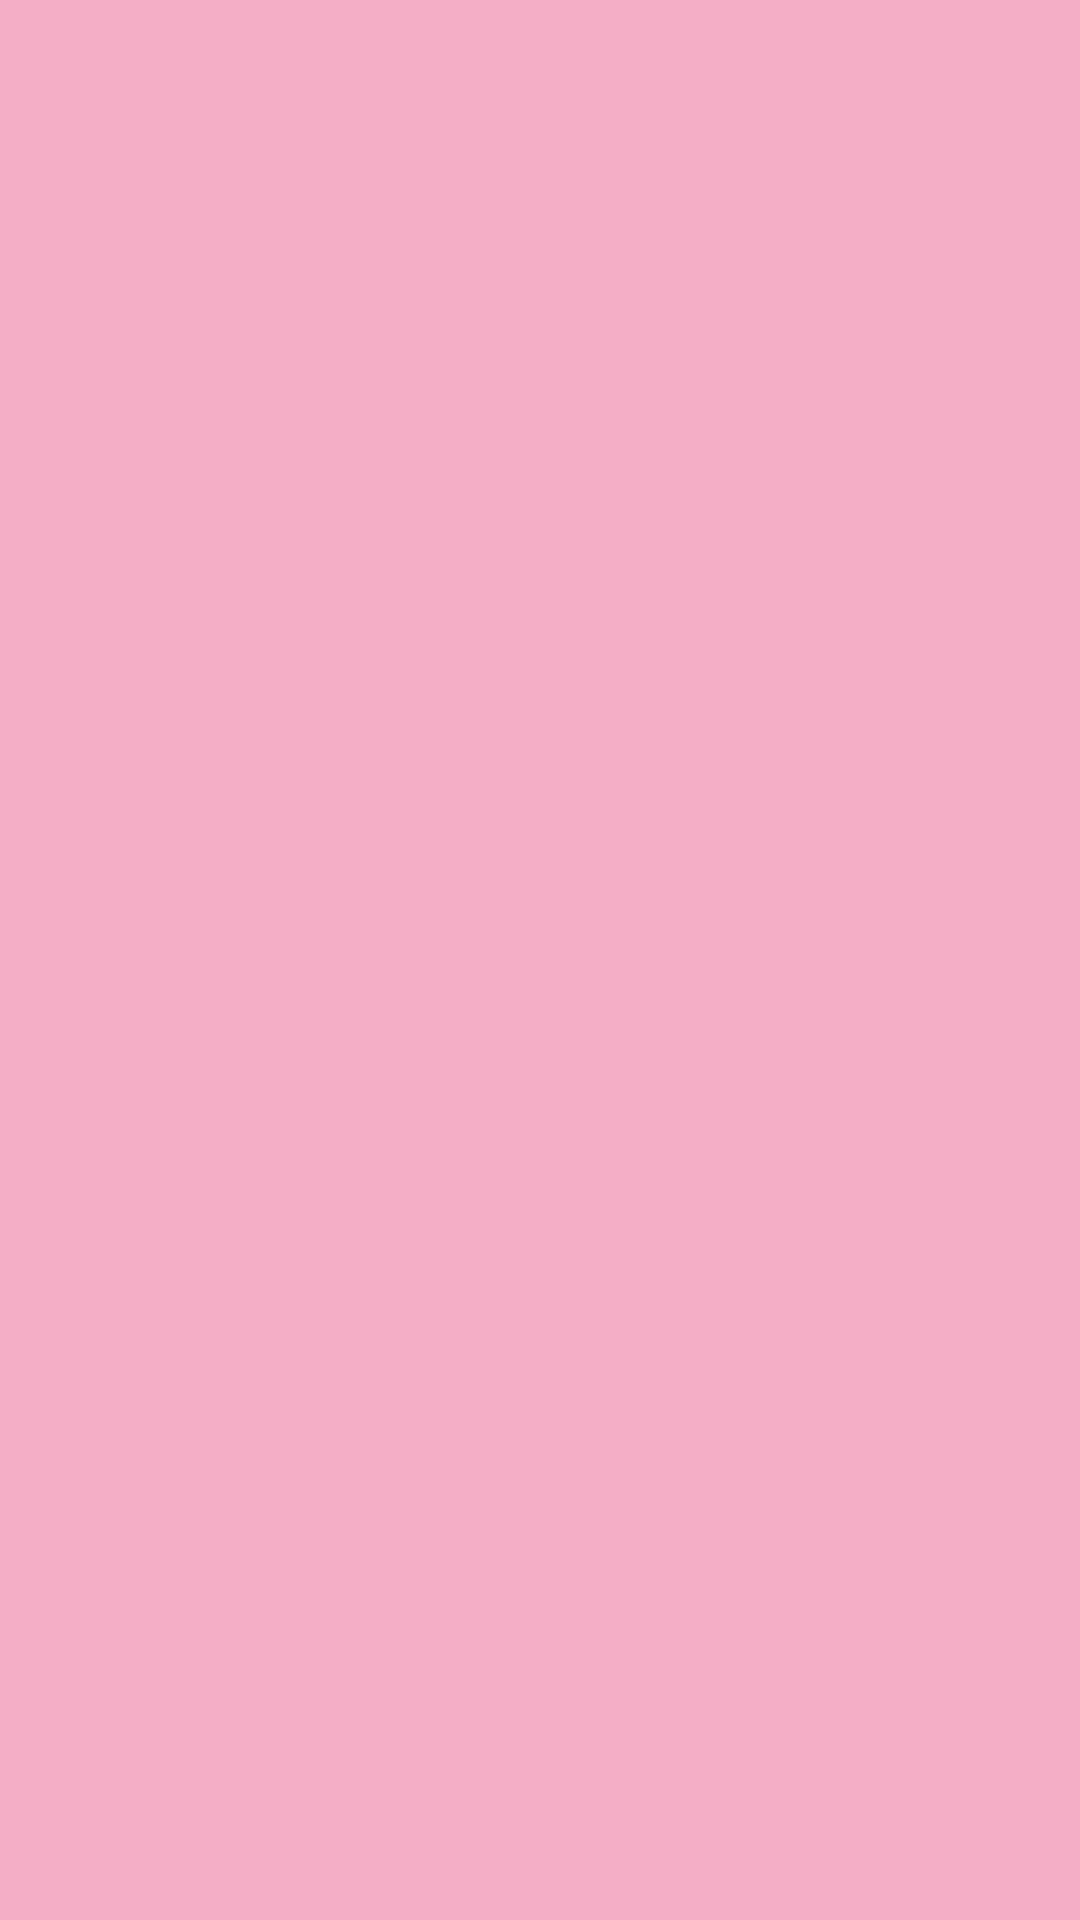 1080x1920 Nadeshiko Pink Solid Color Background